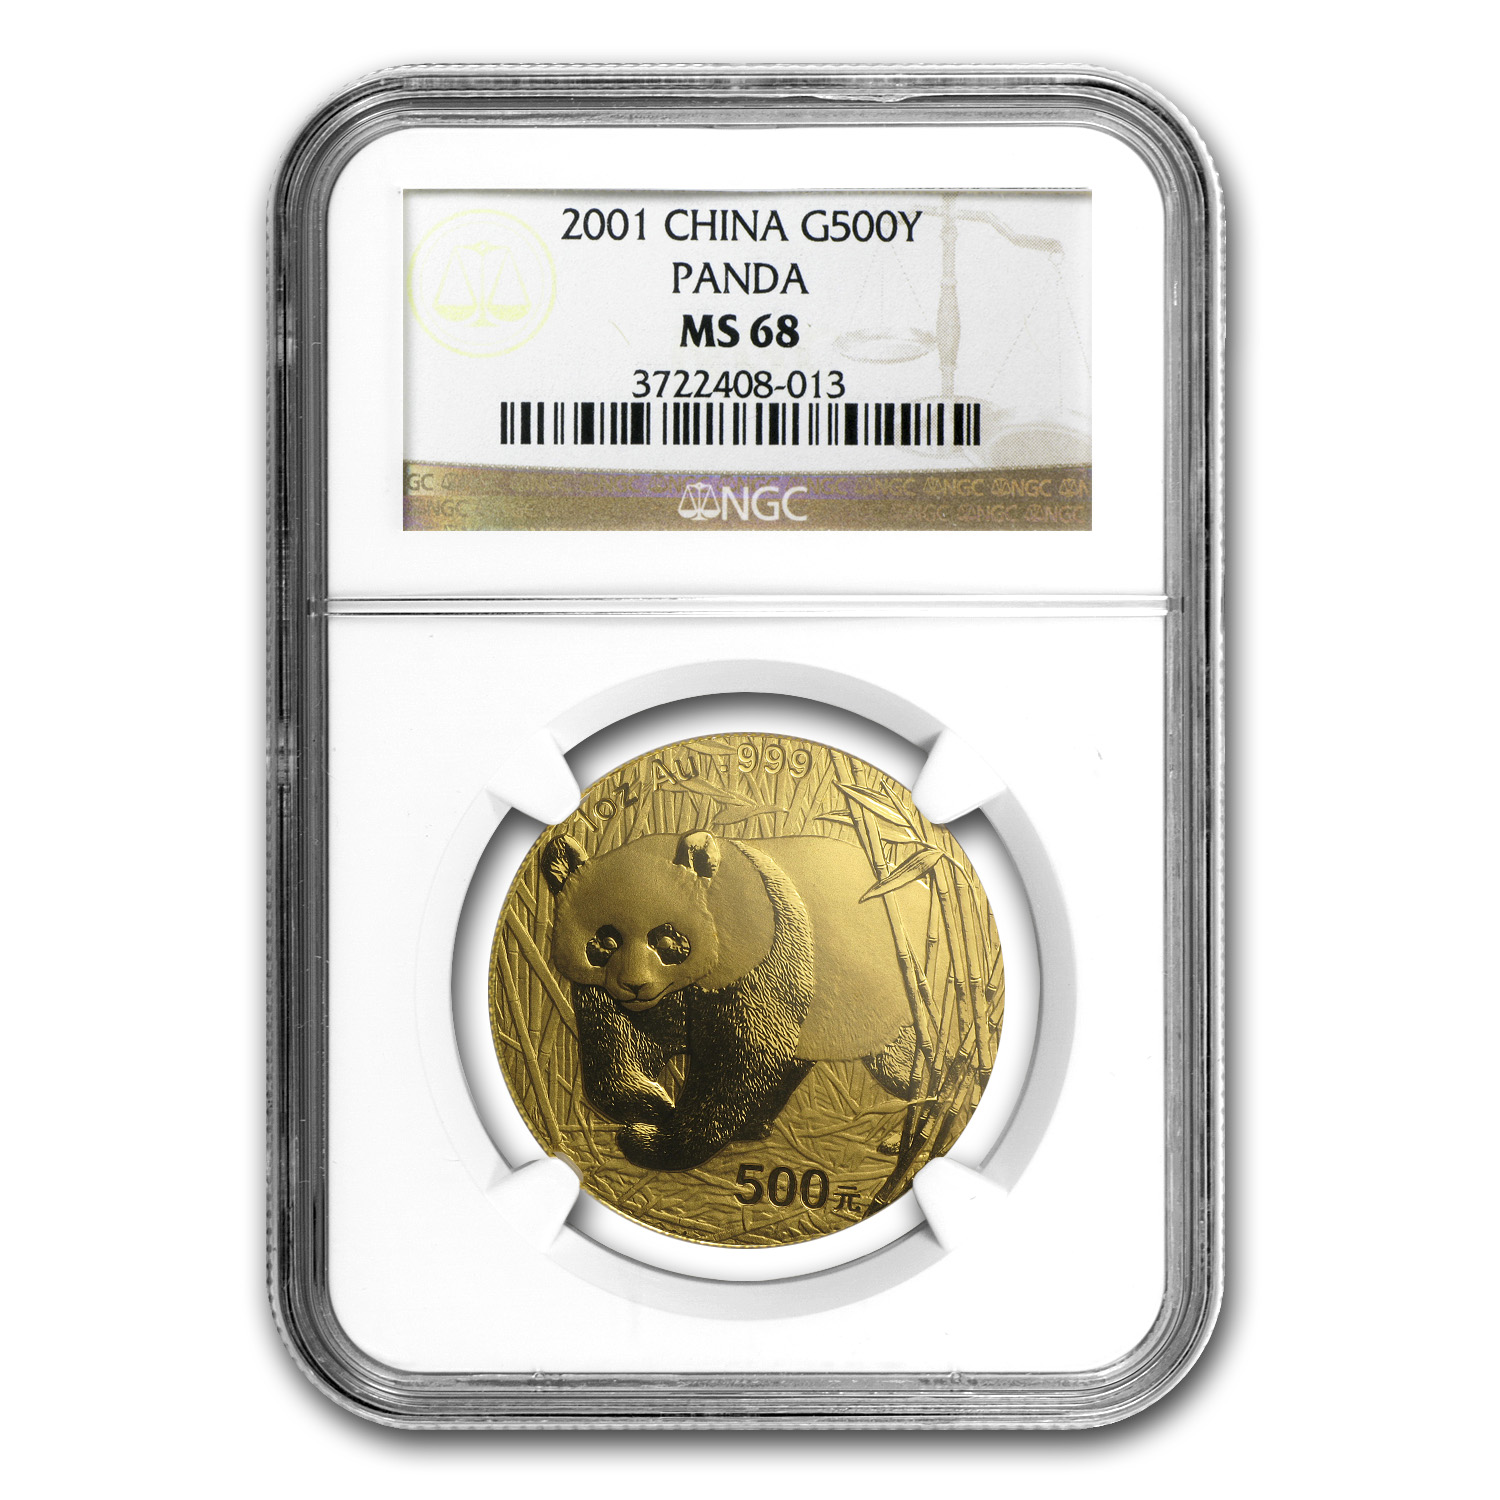 2001 1 oz Gold Chinese Panda MS-68 NGC